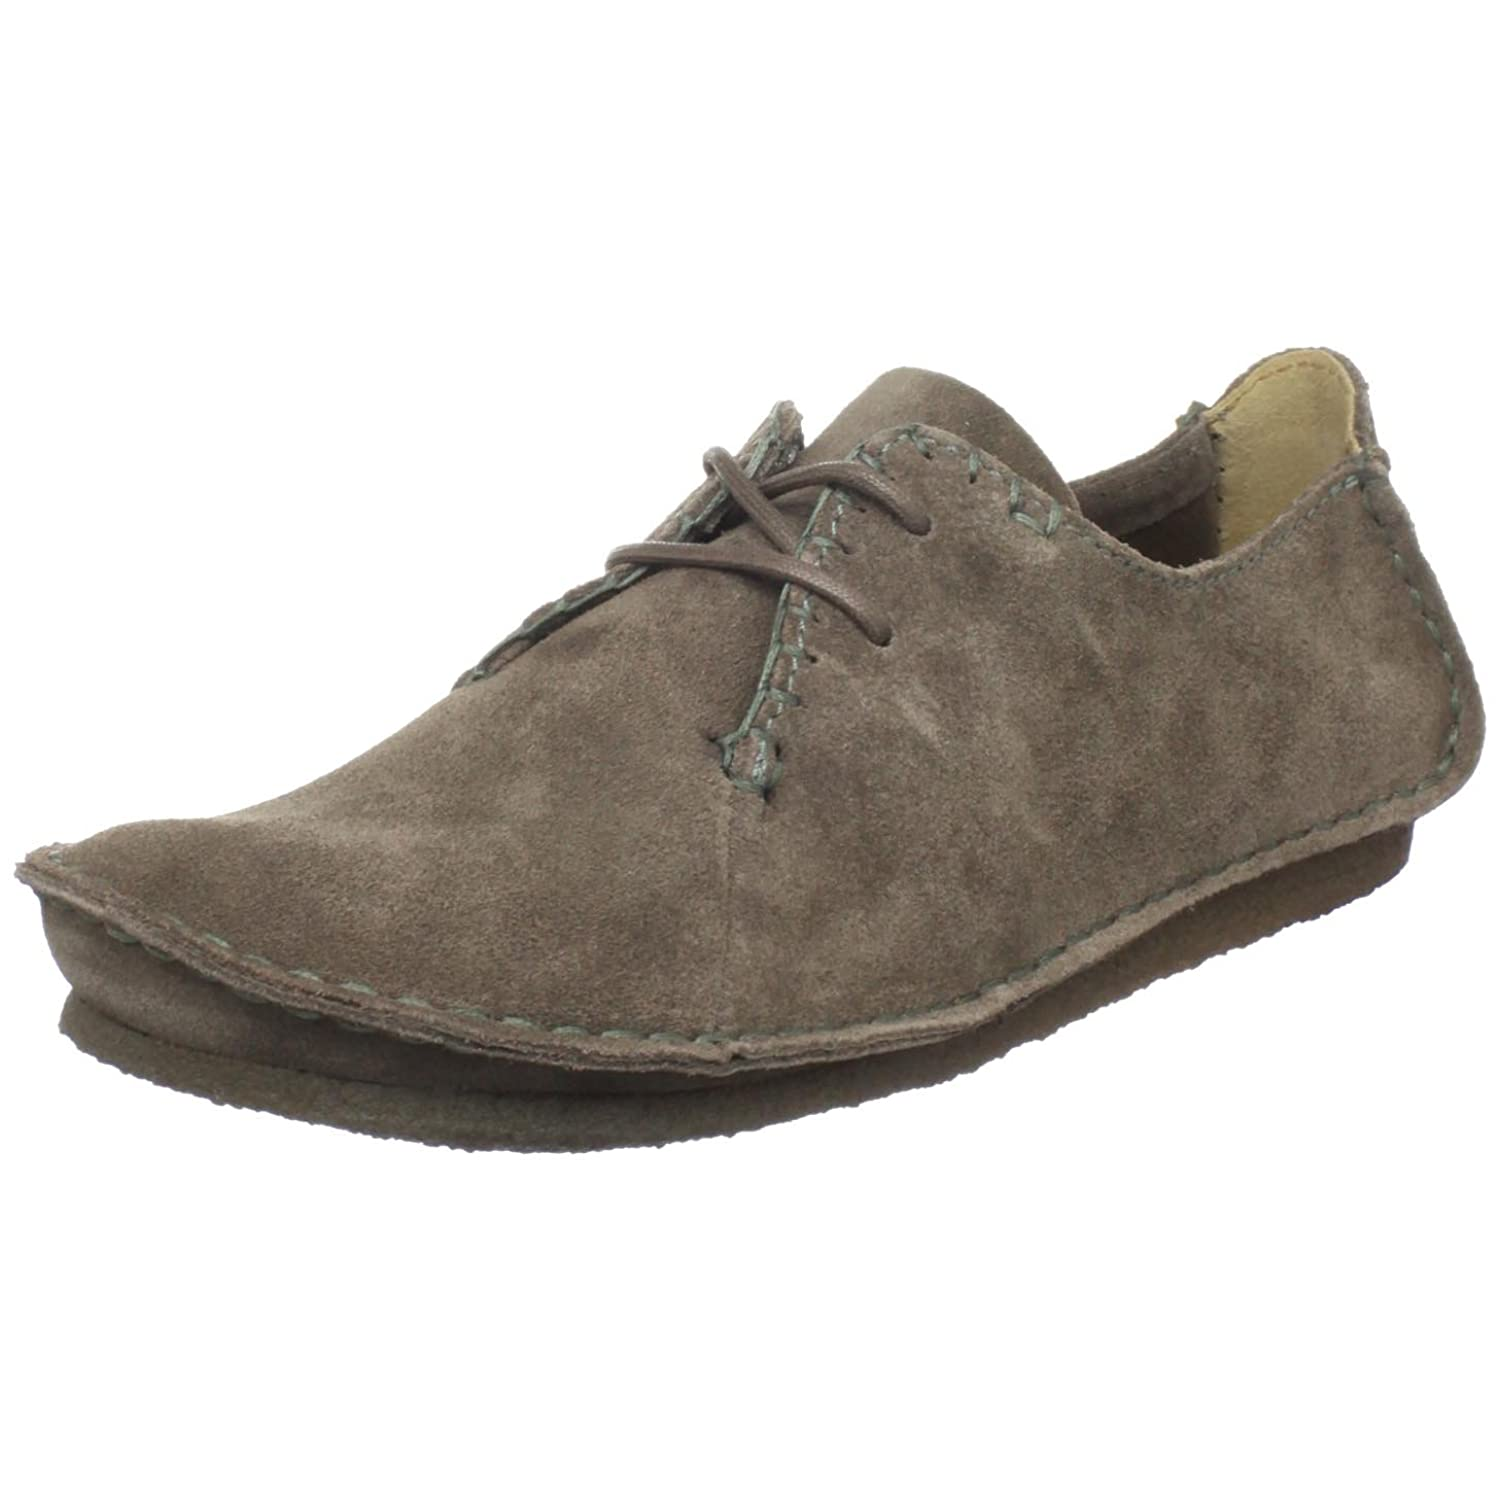 Clarks Women's Faraway Field Oxford